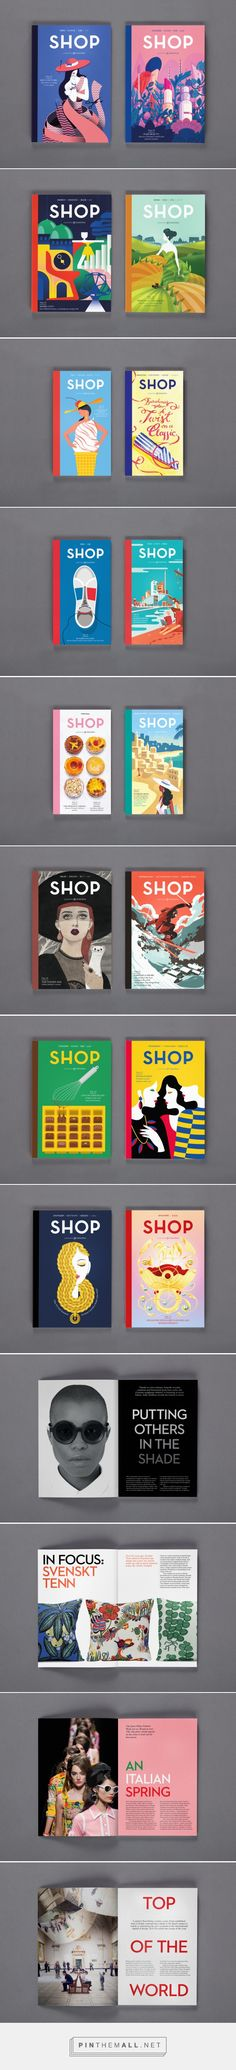 SHOP Magazine 2015, an international luxury shopping and travel guide published…